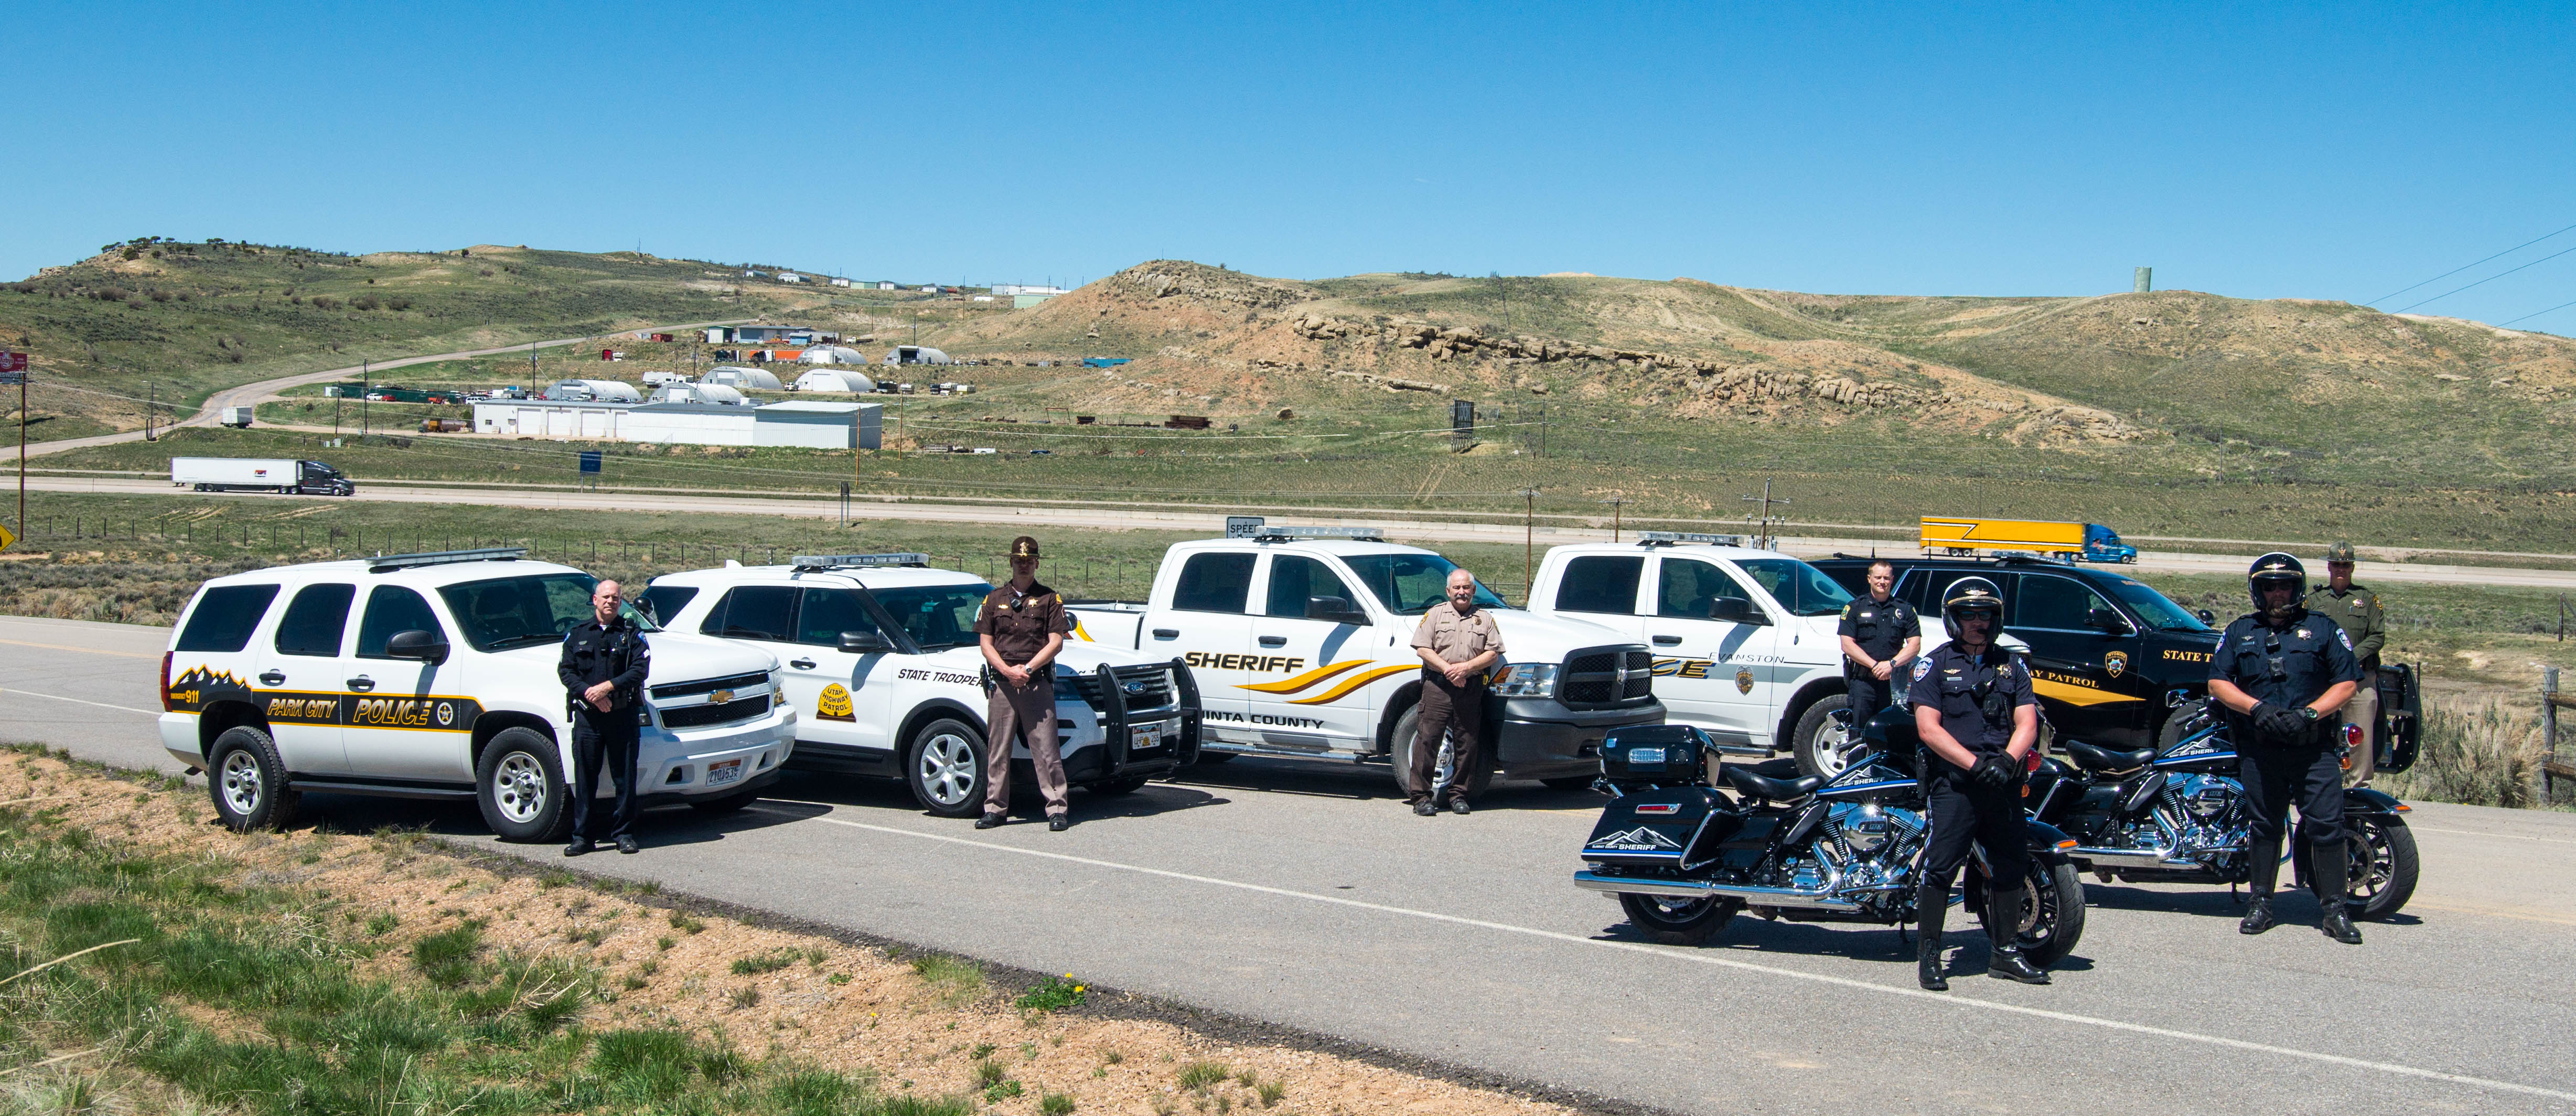 Law enforcement officers from Park City Police Department, Utah Highway Patrol, Uinta County (WY) Sheriff's Office, Evanston Police Department, Wyoming Highway Patrol and Summit County Sheriff's Office will be participating in the Border to Border enforcement operation.